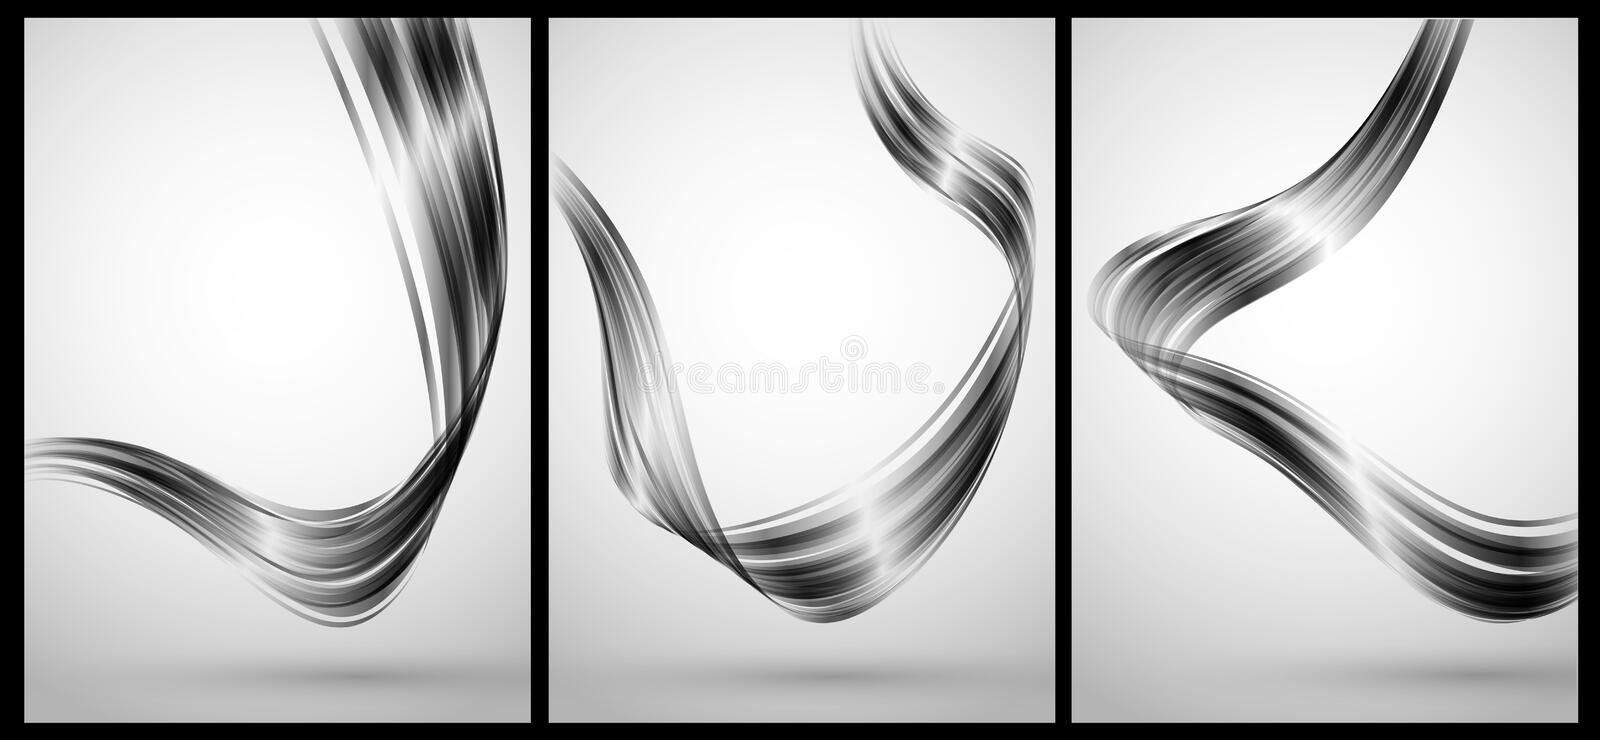 Download Abstract Chrome Elements For Background Stock Photo - Image: 22272170